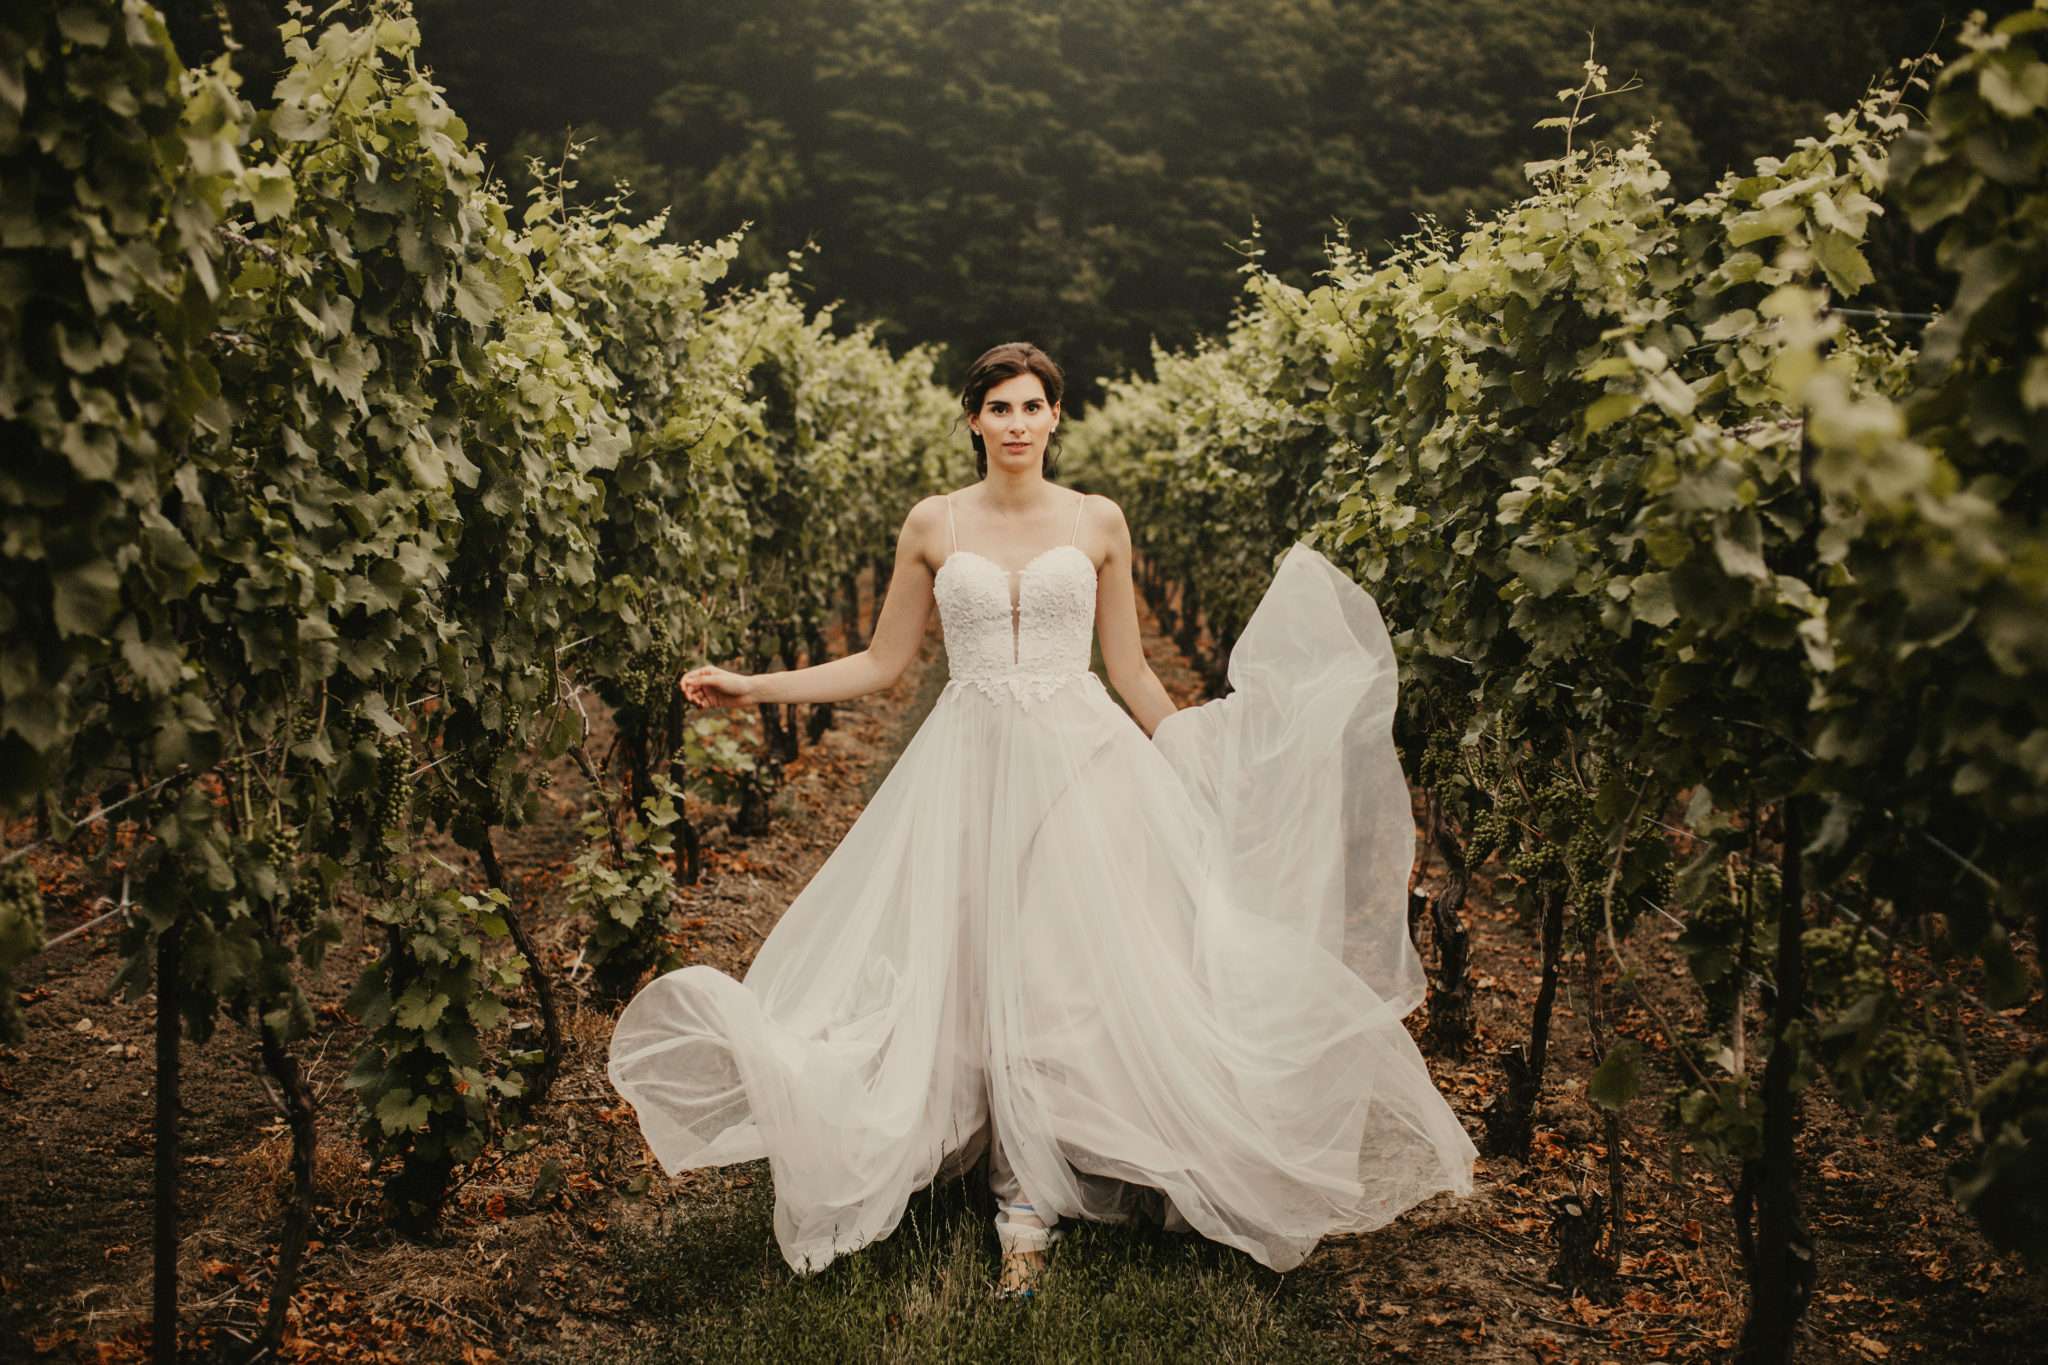 bride-wedding-inn-on-the-twenty-cave-spring-vineyard